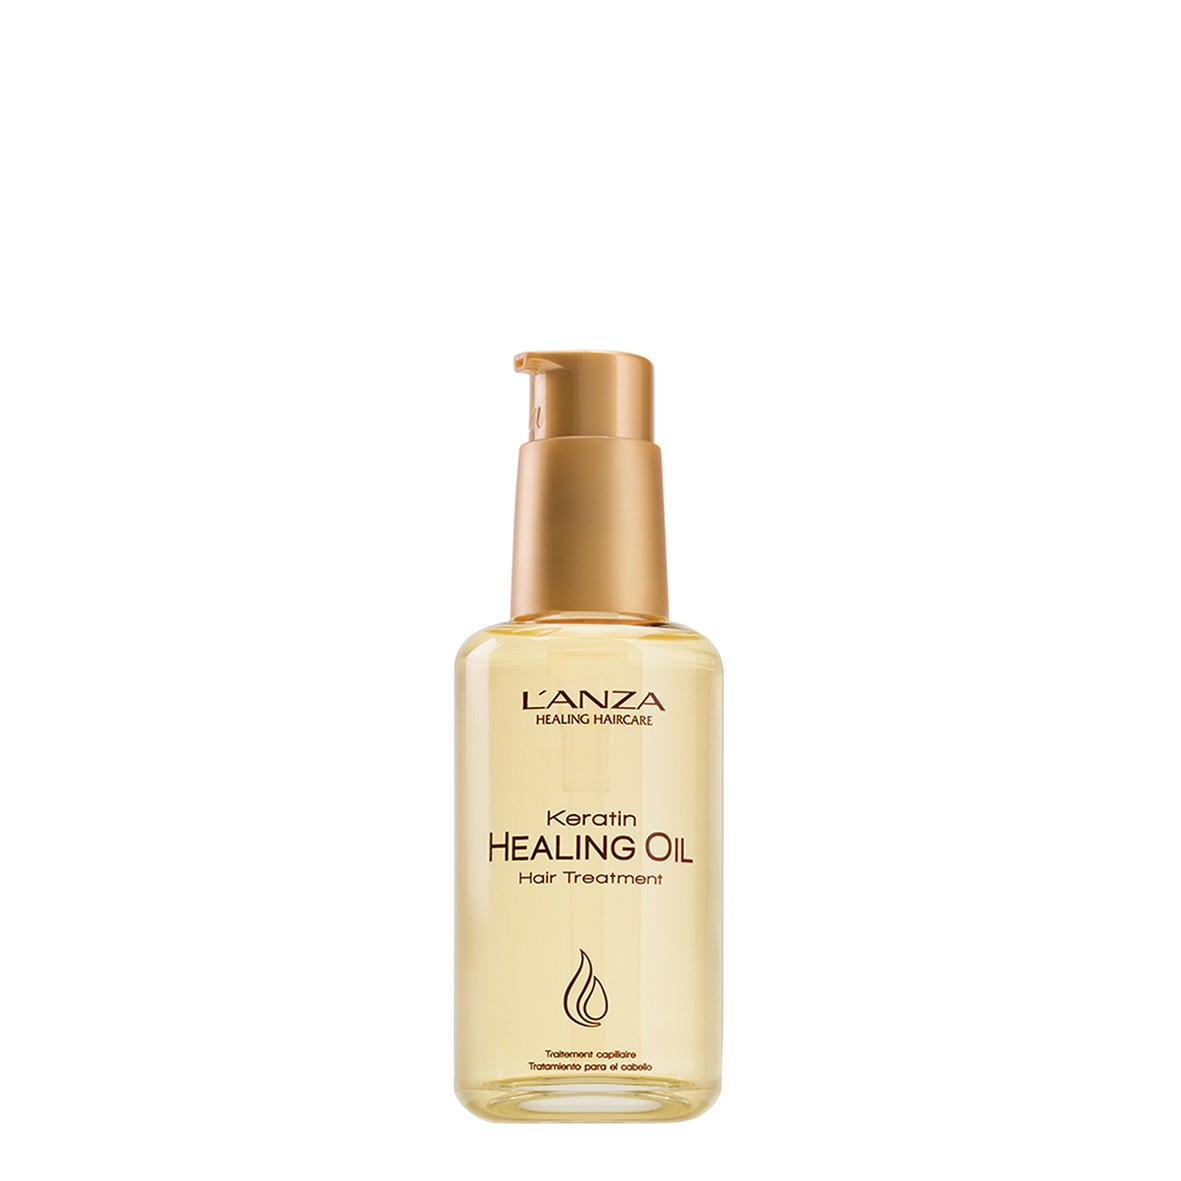 L'anza Keratin Healing Oil Hair Treatment 100 ml